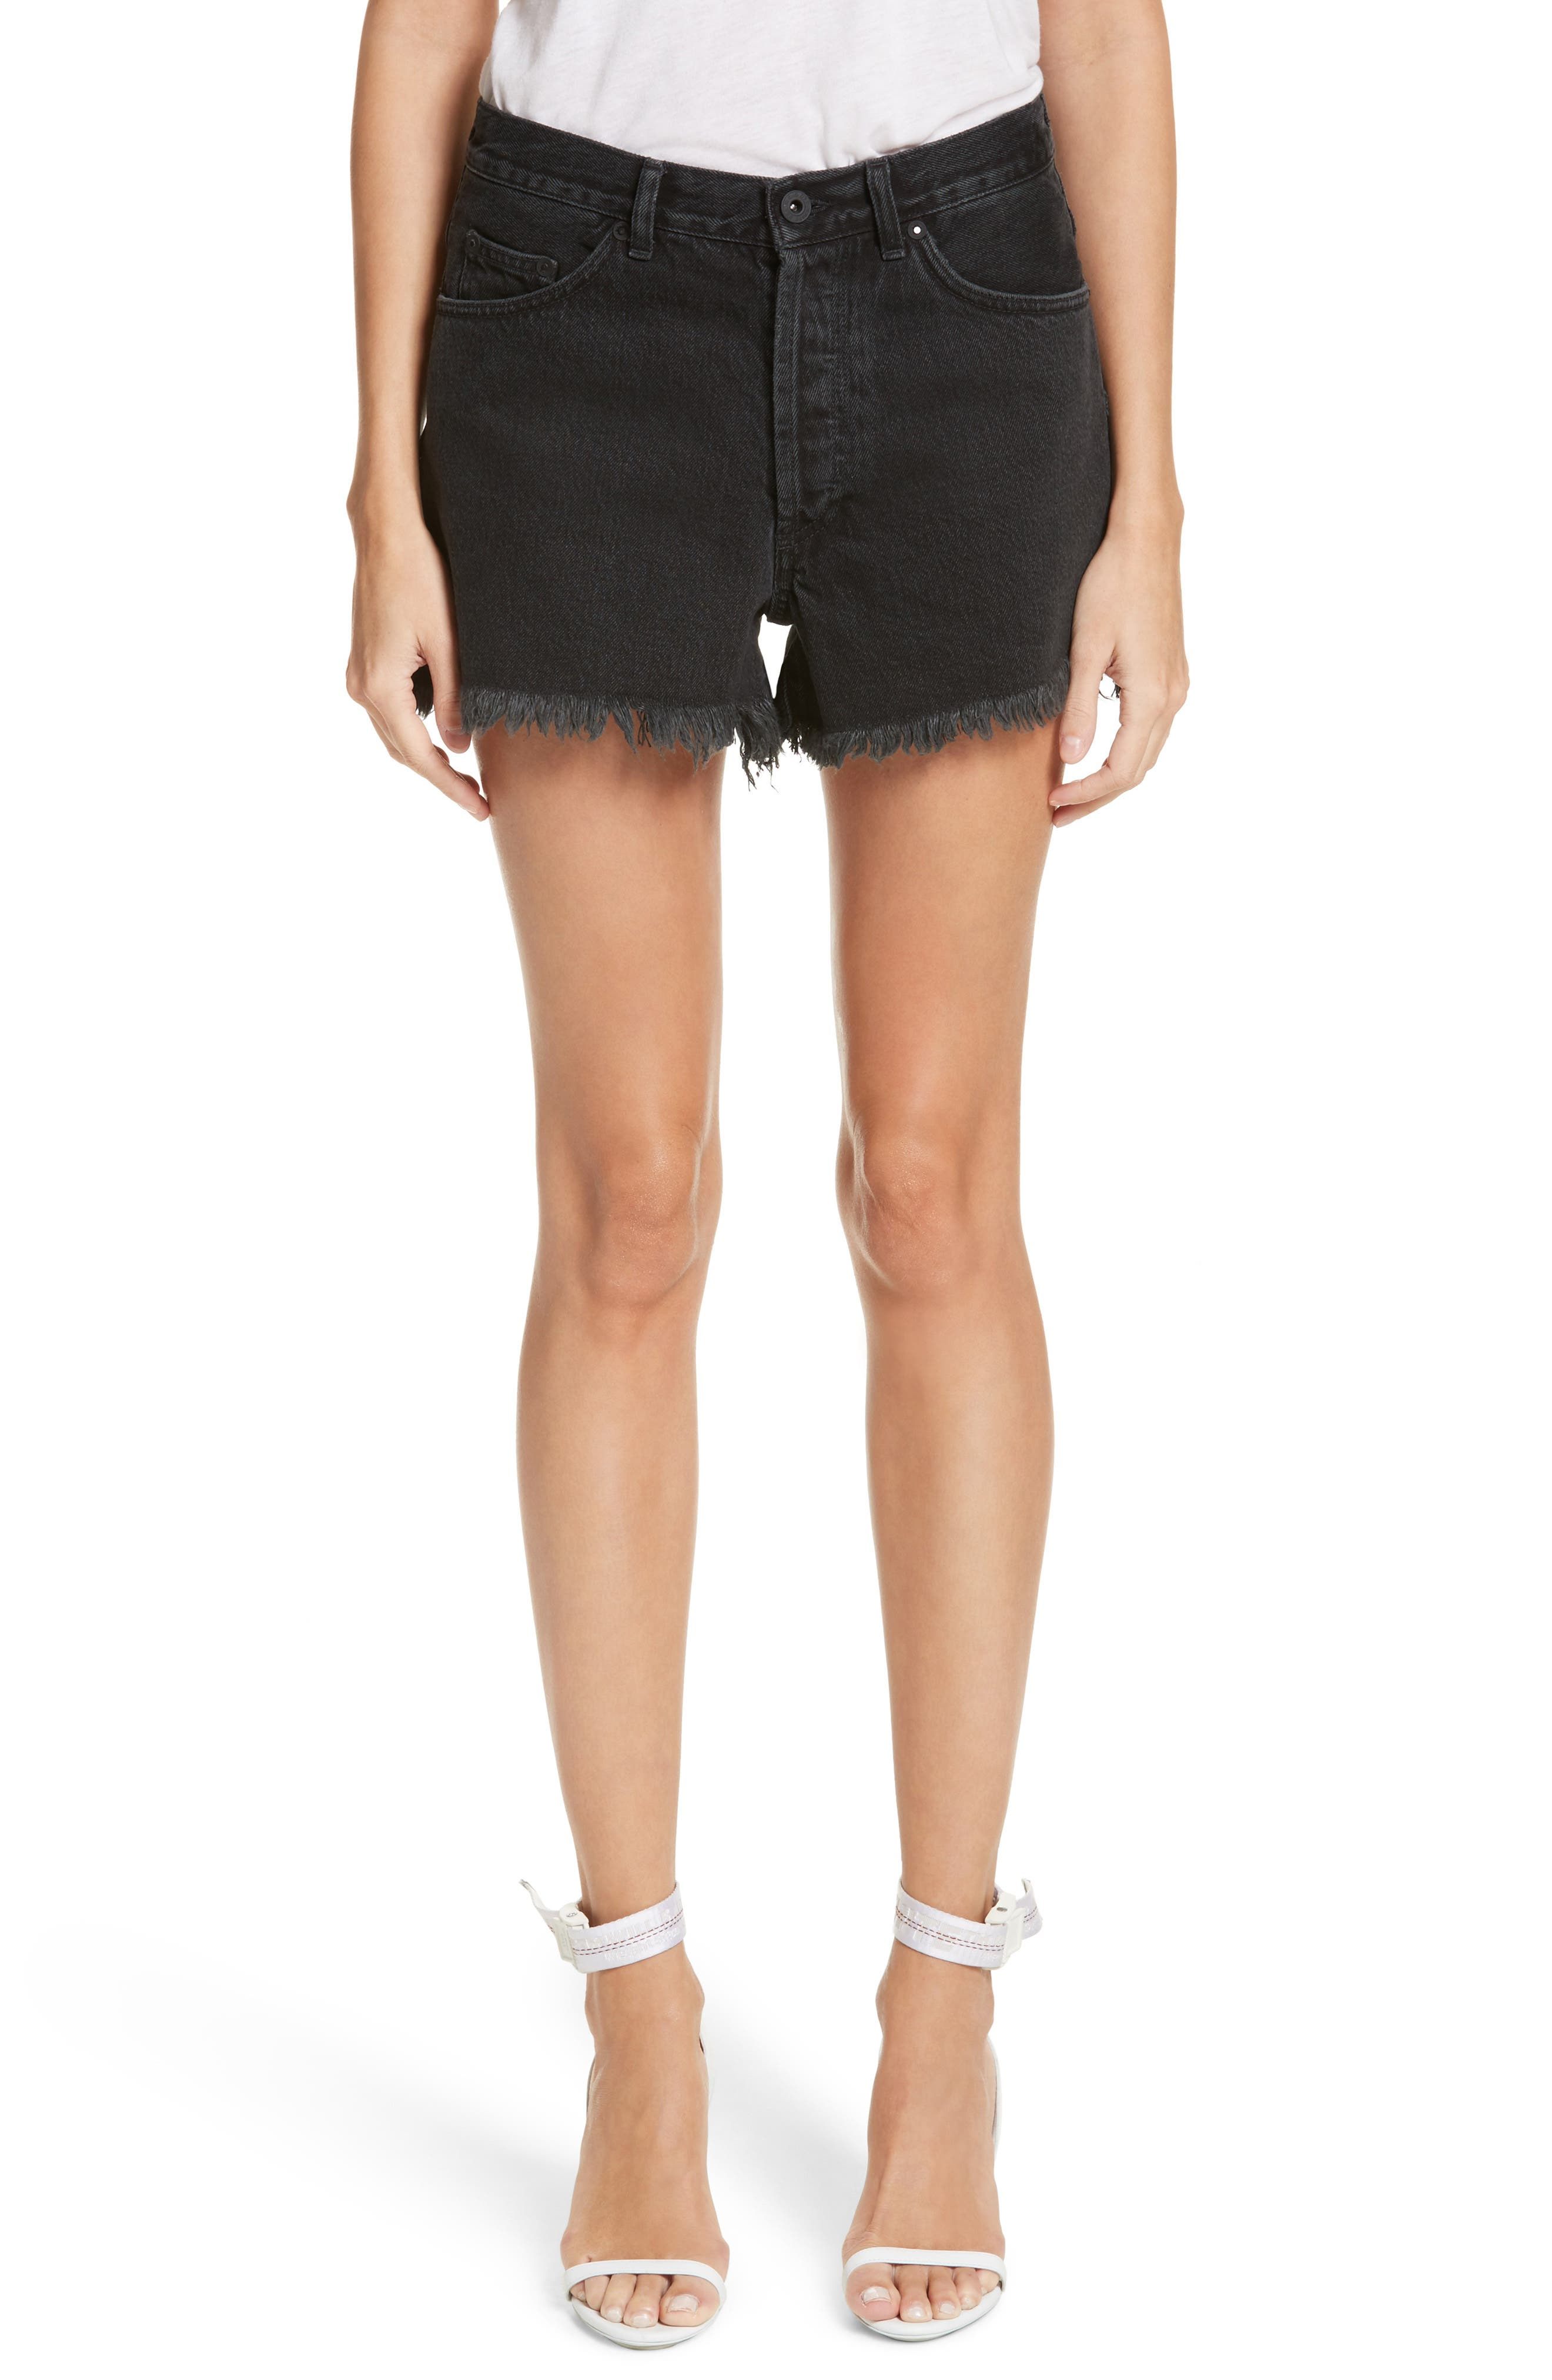 Off White Fern 5 Pocket Shorts,                         Main,                         color, Vintage Black